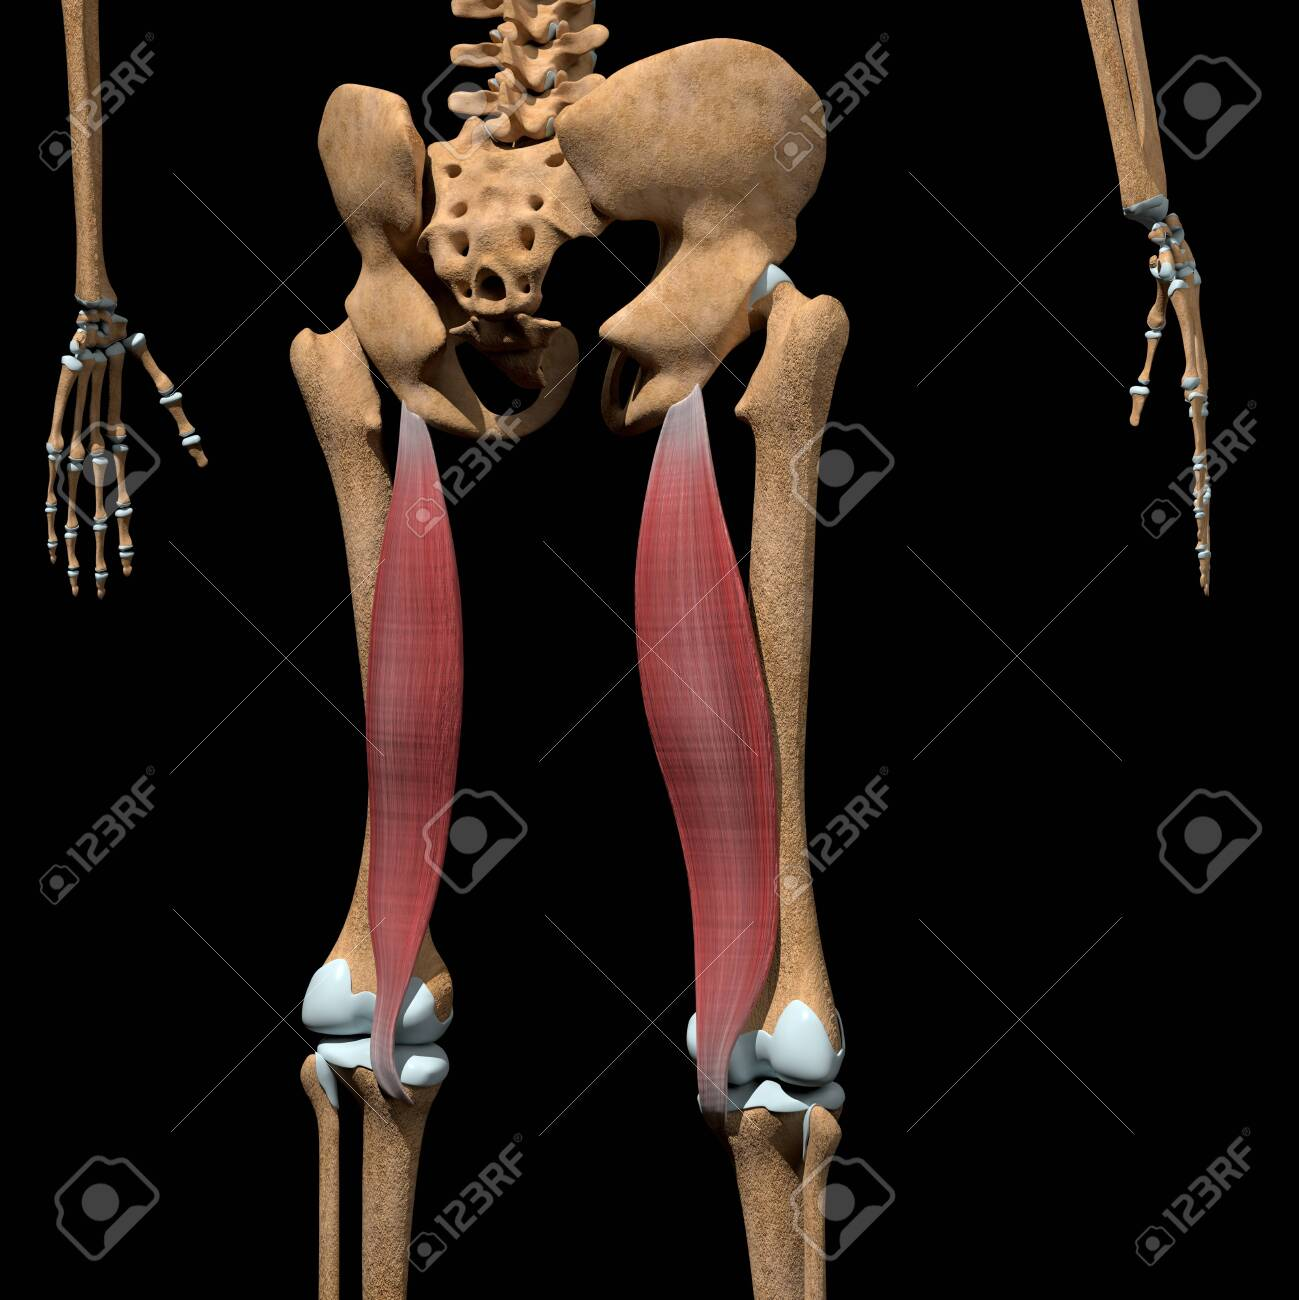 This 3d illustration shows the semimembranosus muscles on skeleton - 142171657